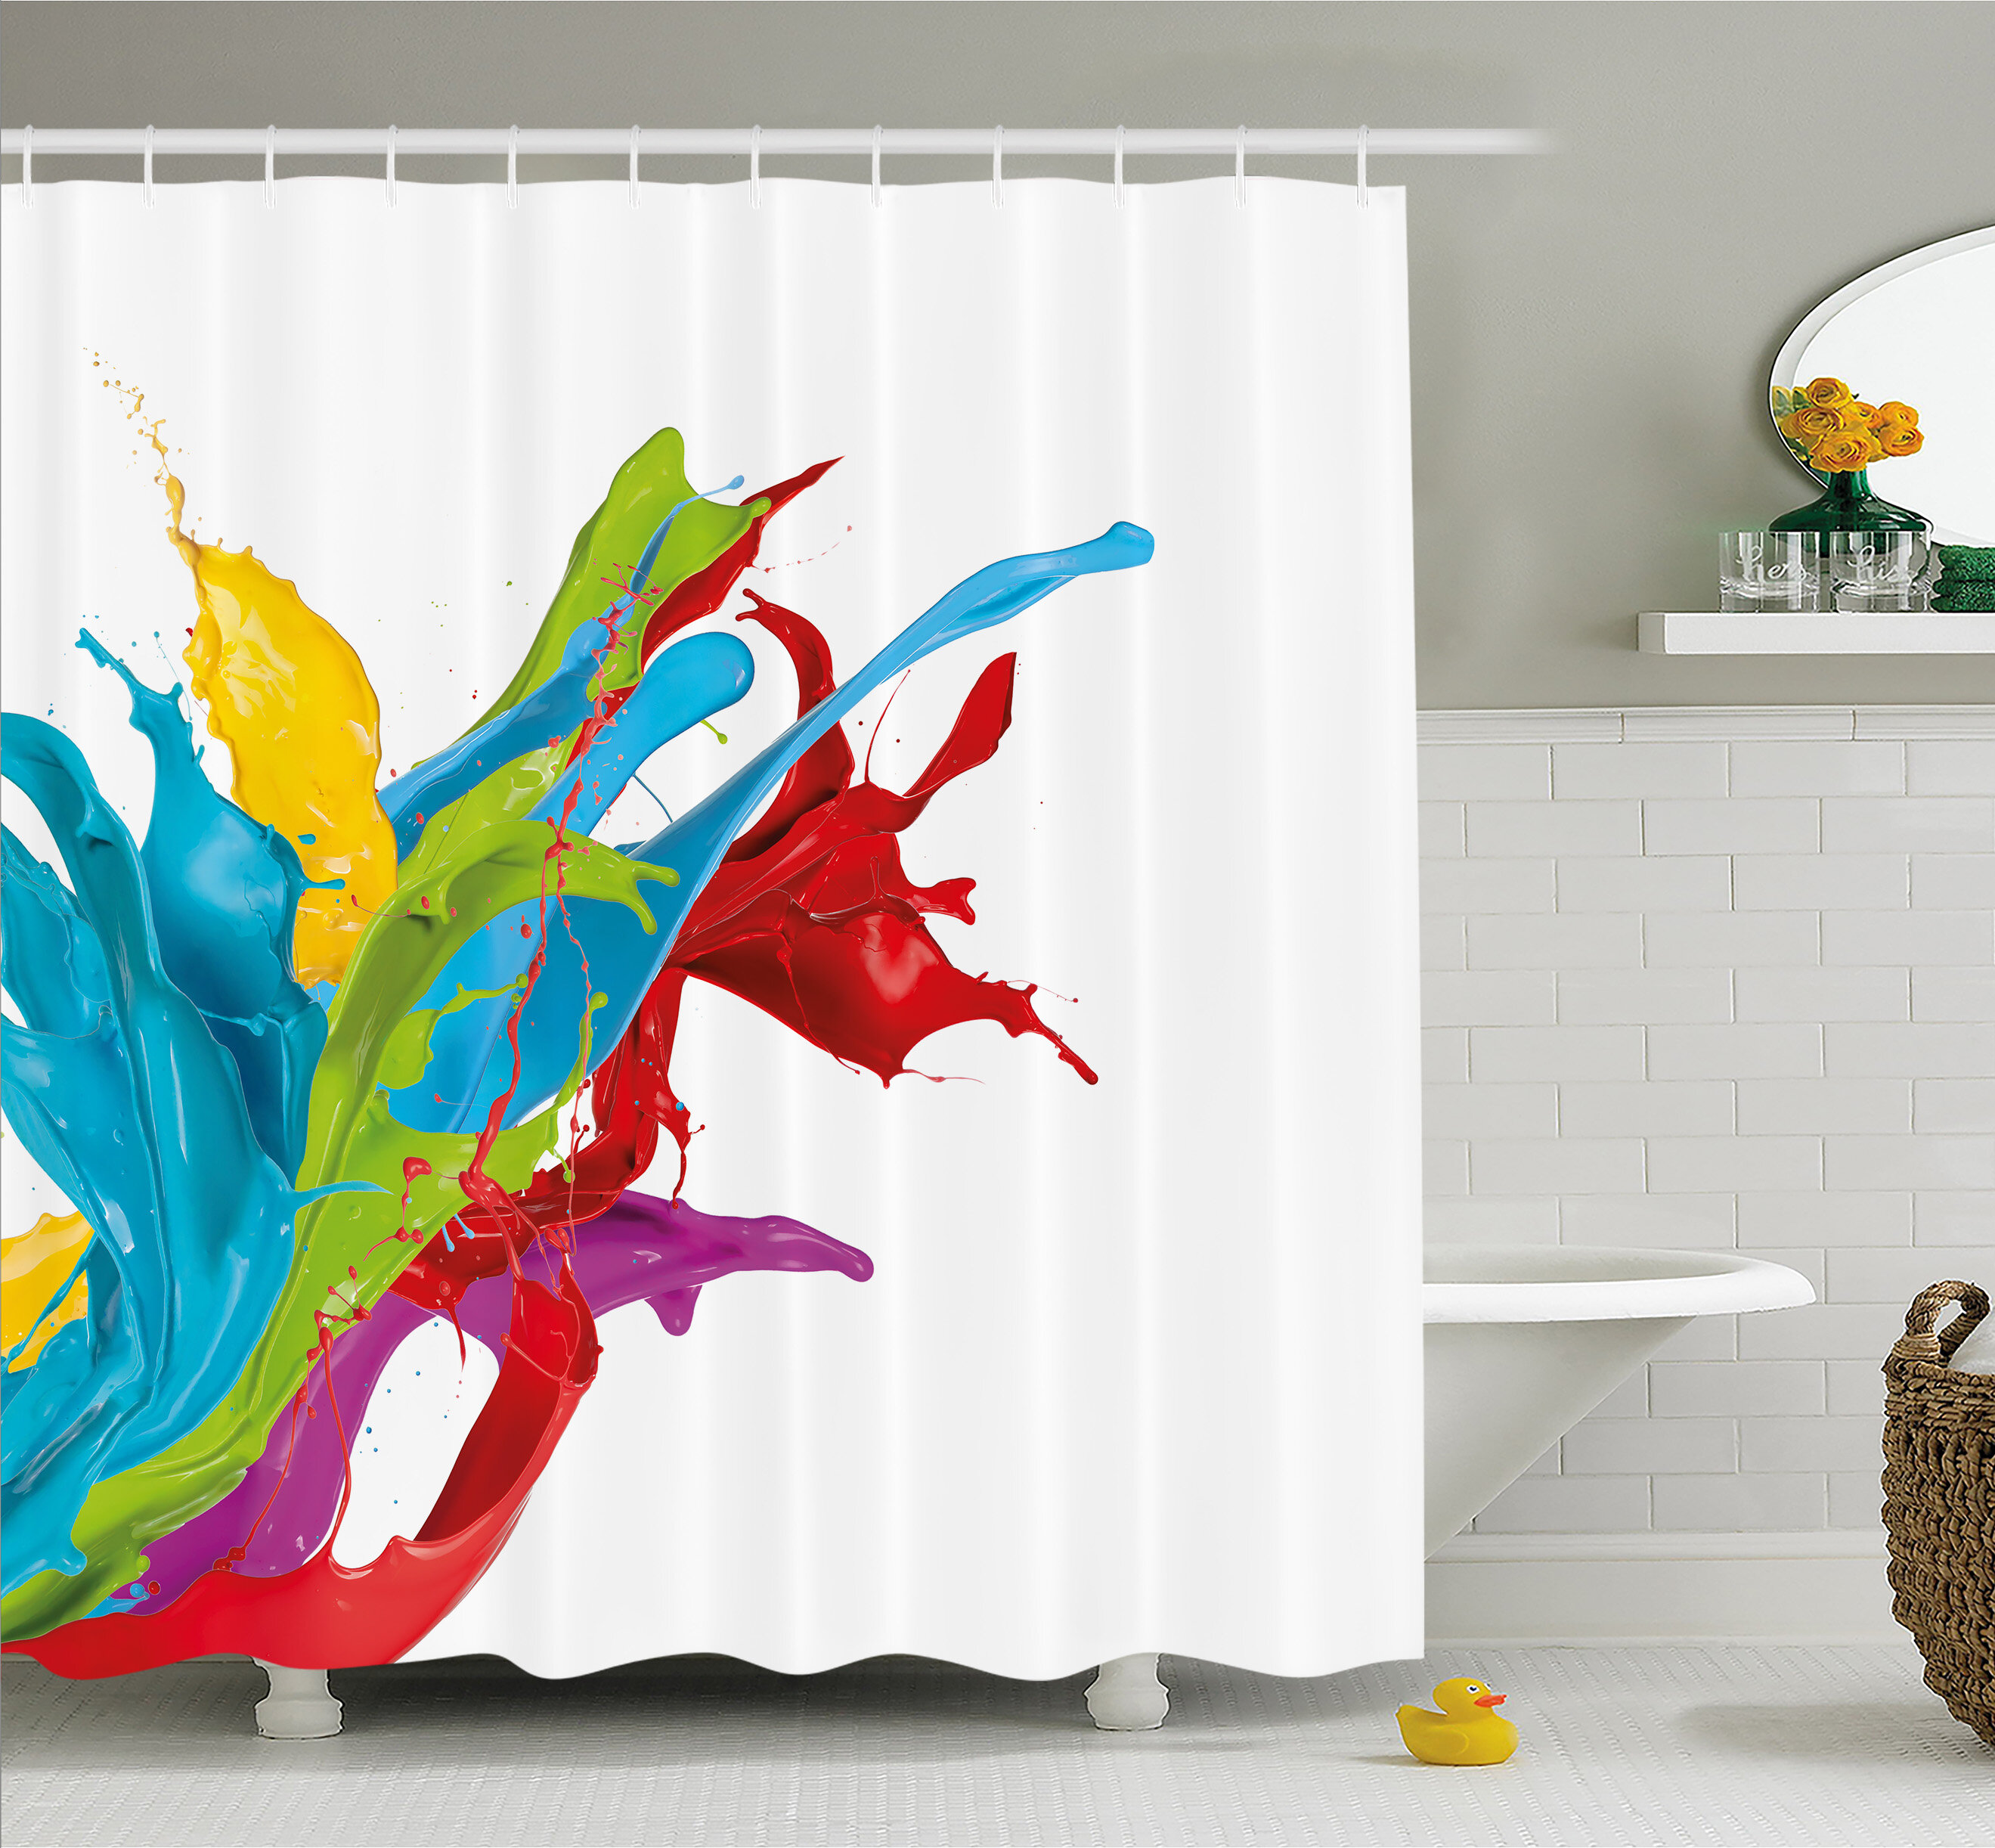 Ambesonne Colourful Home Surreal Fluid Liquid Flowing Paint Splash Featured Digital Artful Graphic Shower Curtain Set Reviews